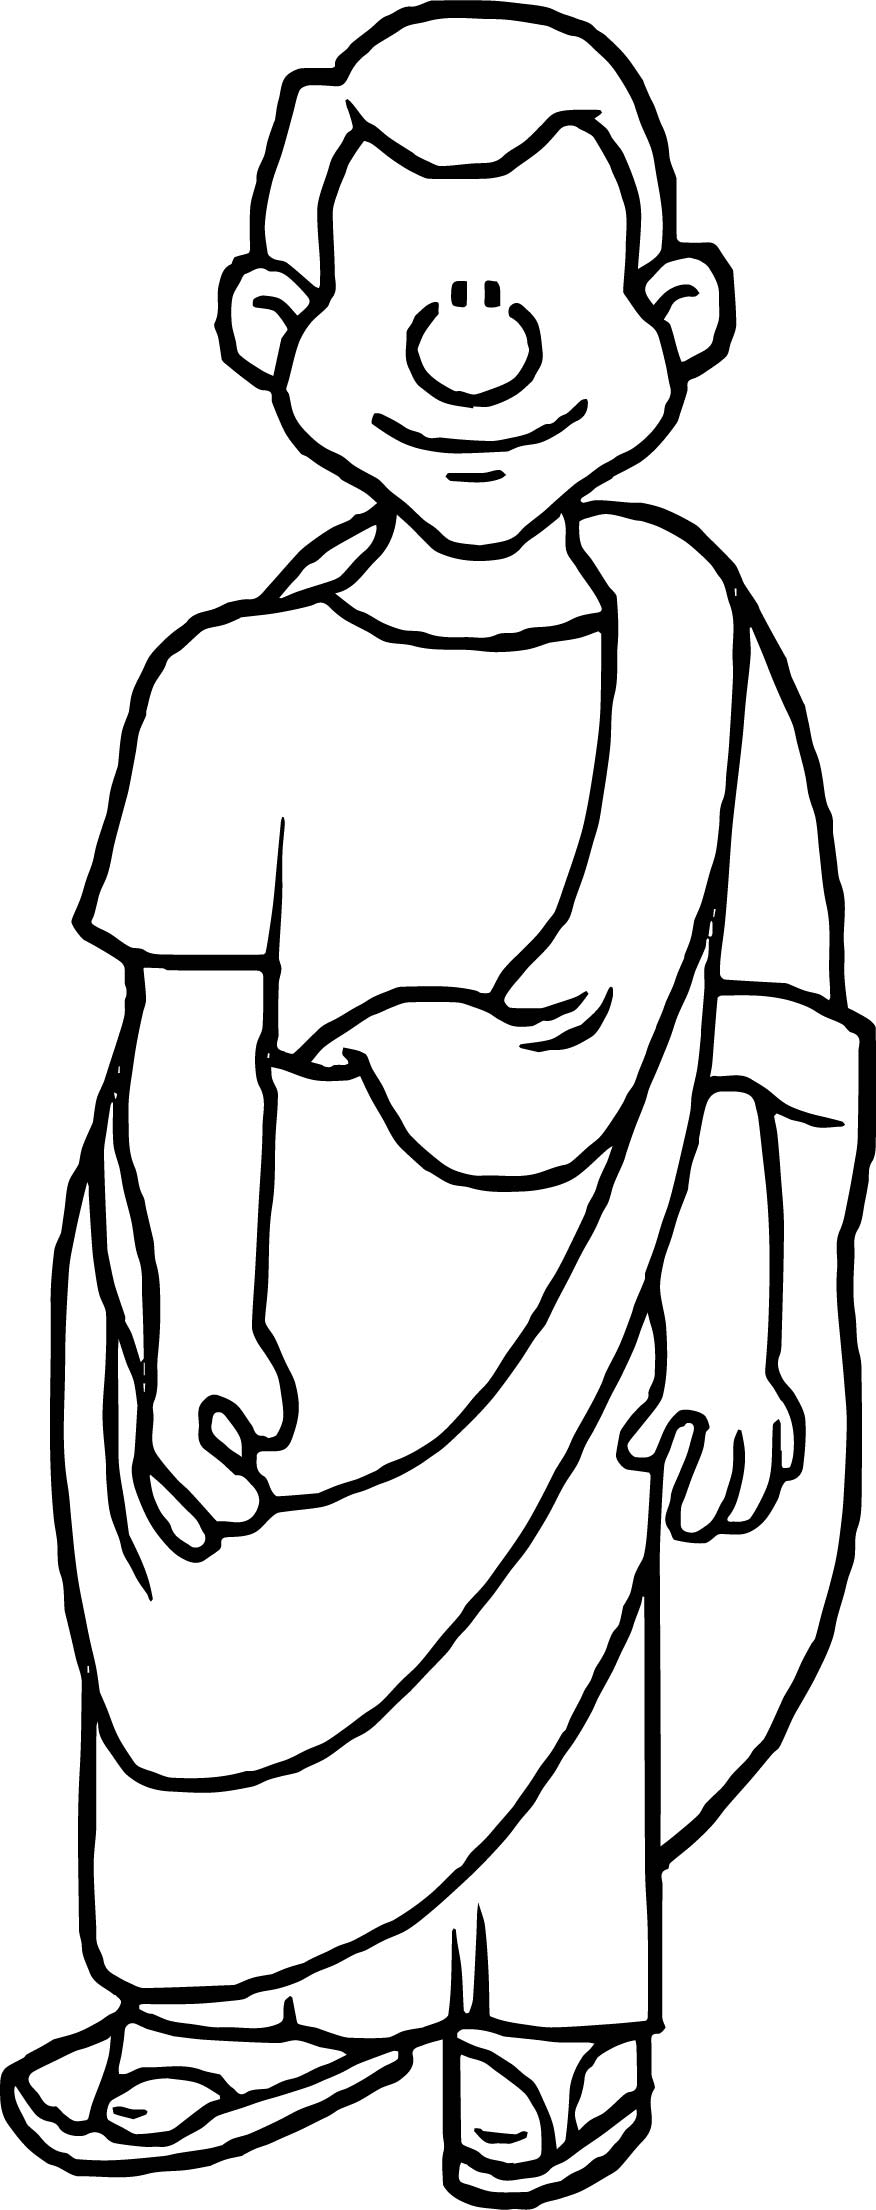 Rome Man Coloring Page